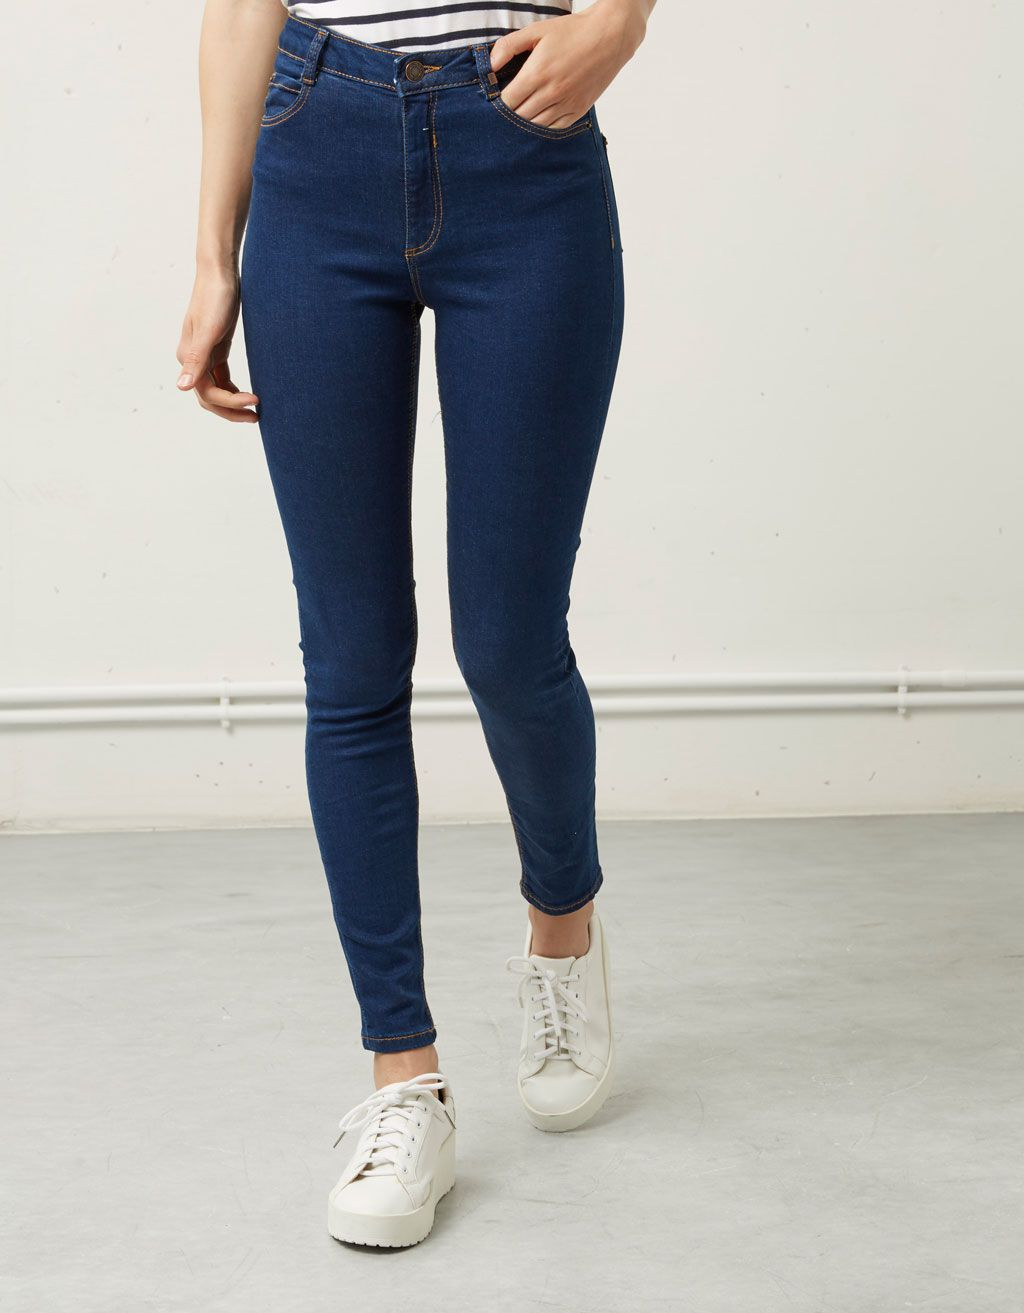 396a0137e76fe4 Super Skinny High waist jeans Bershka - High Waist - Bershka Czech Republic